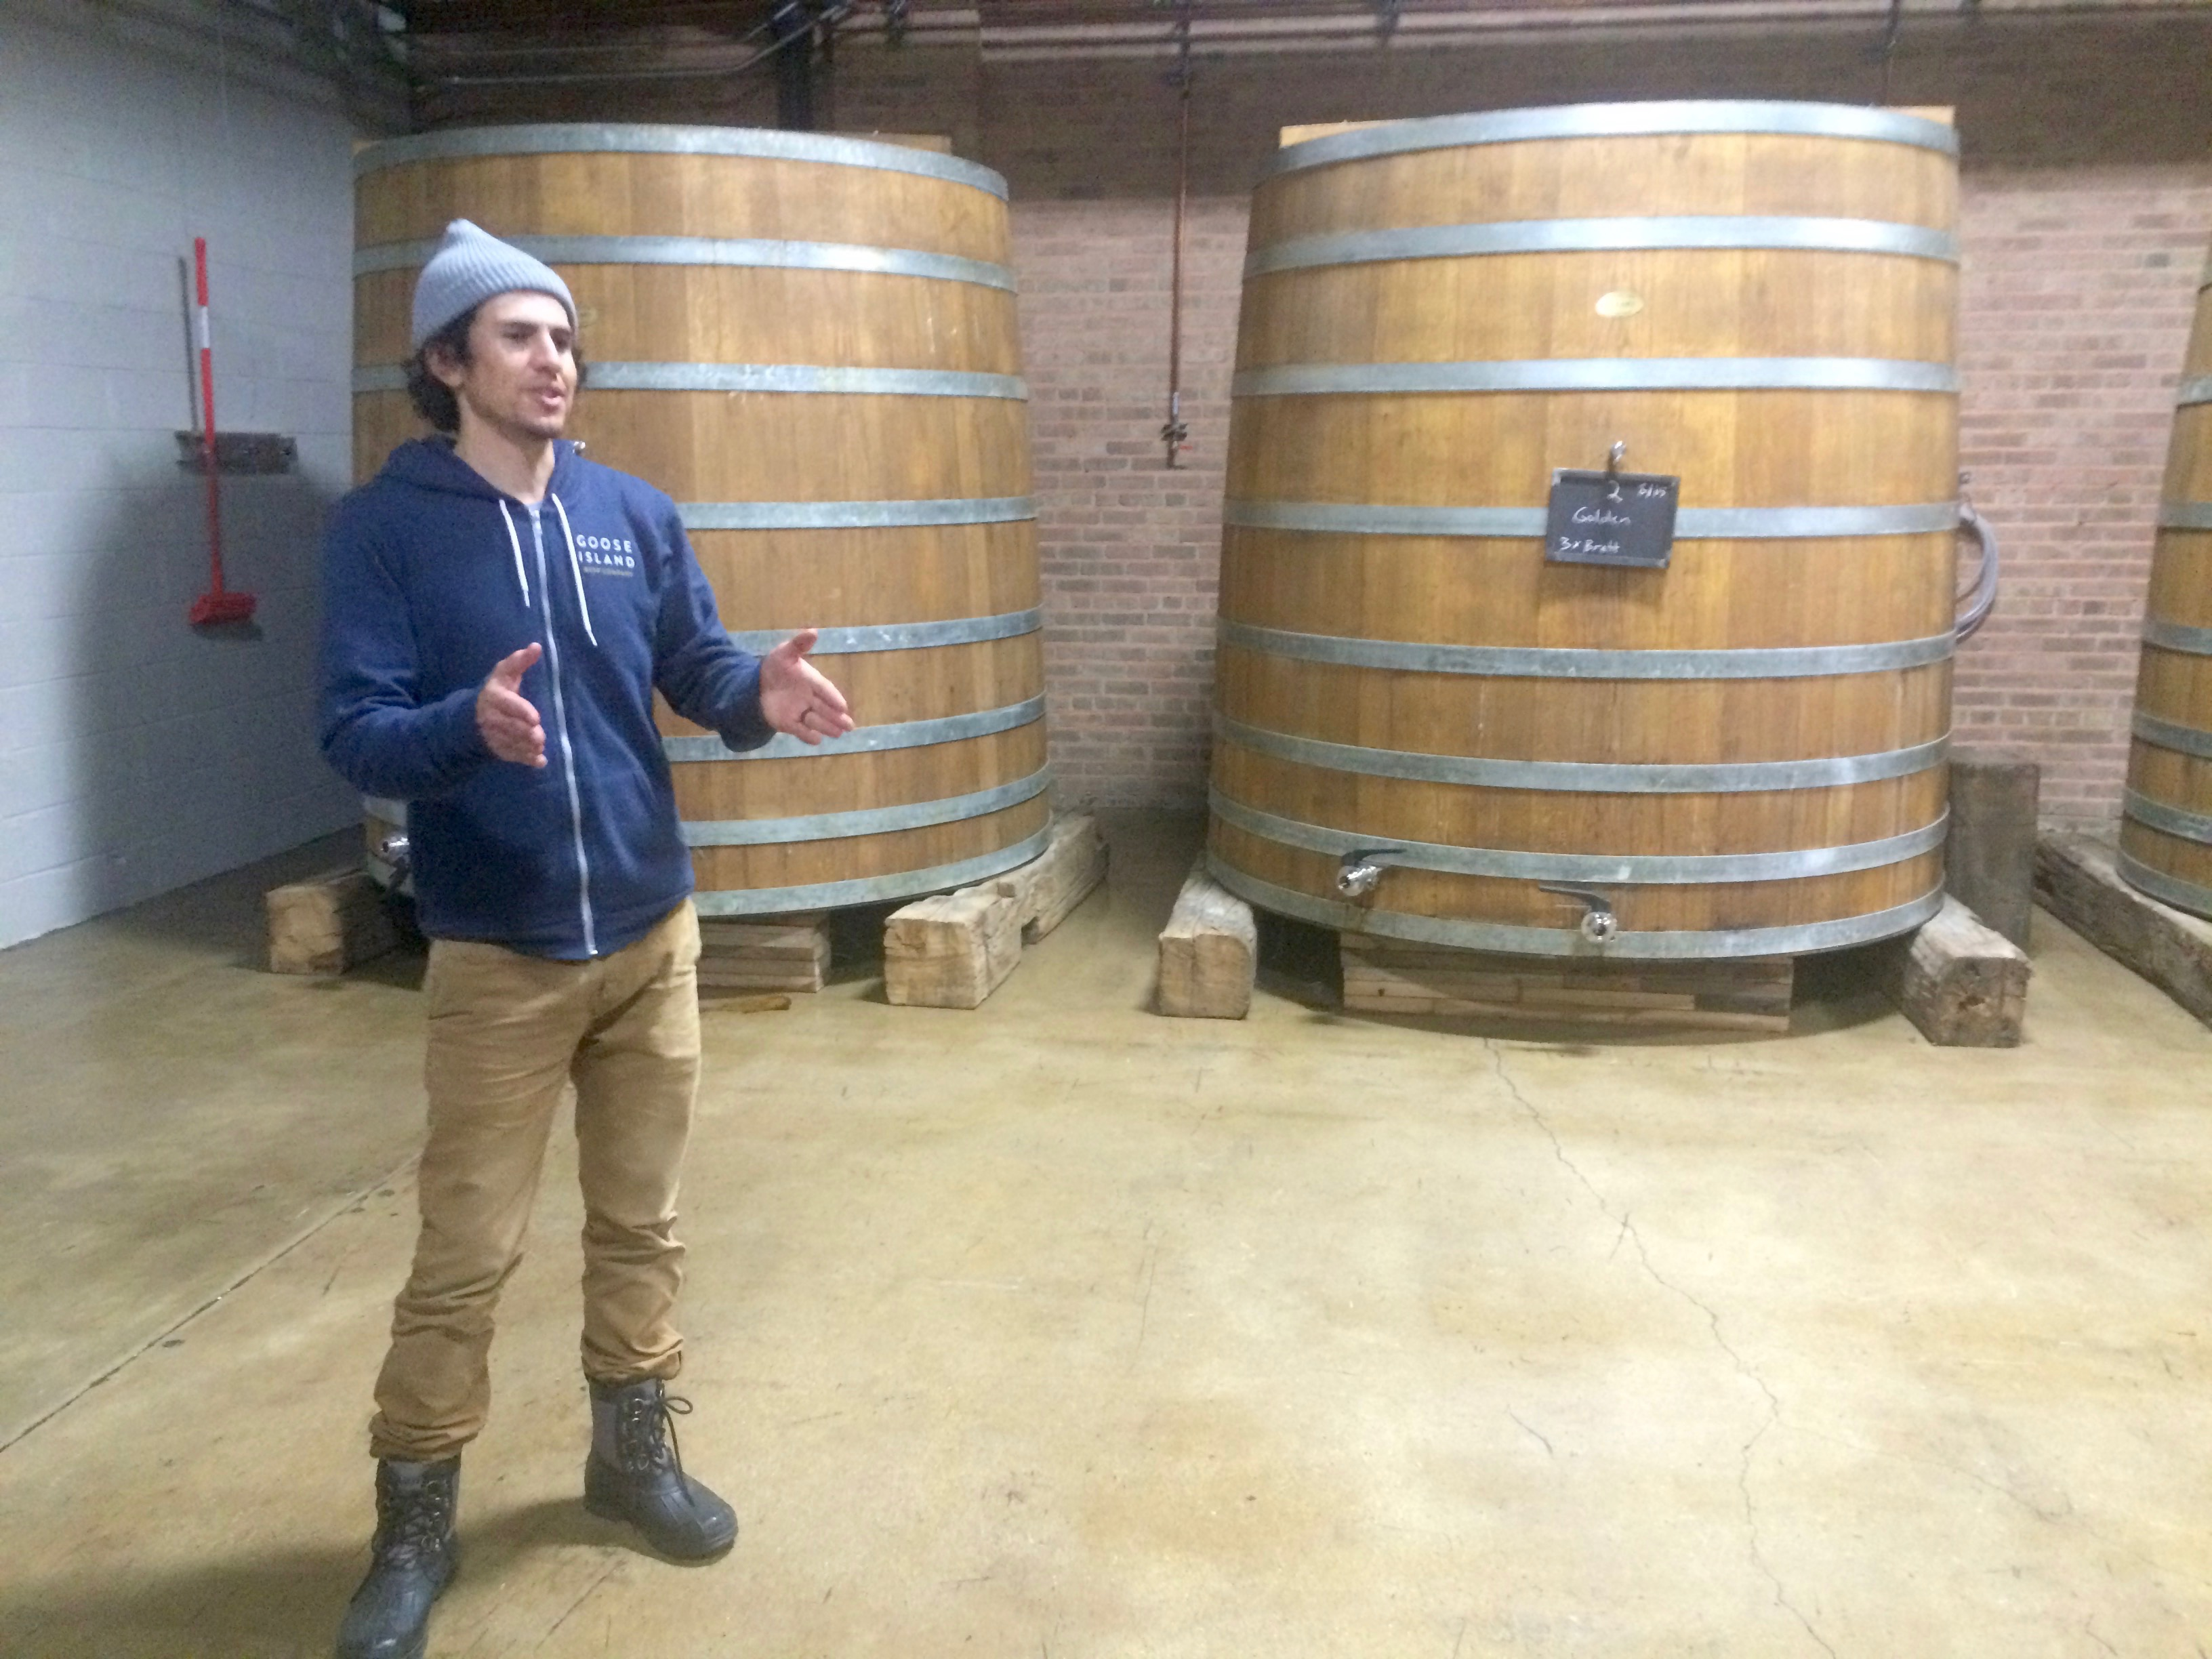 Eric Ponce, new Head Brewer at Logsdon Farmhouse Ales, giving a tour of Goose Island Barrel Warehouse, aka The Staviary, in November 2015.